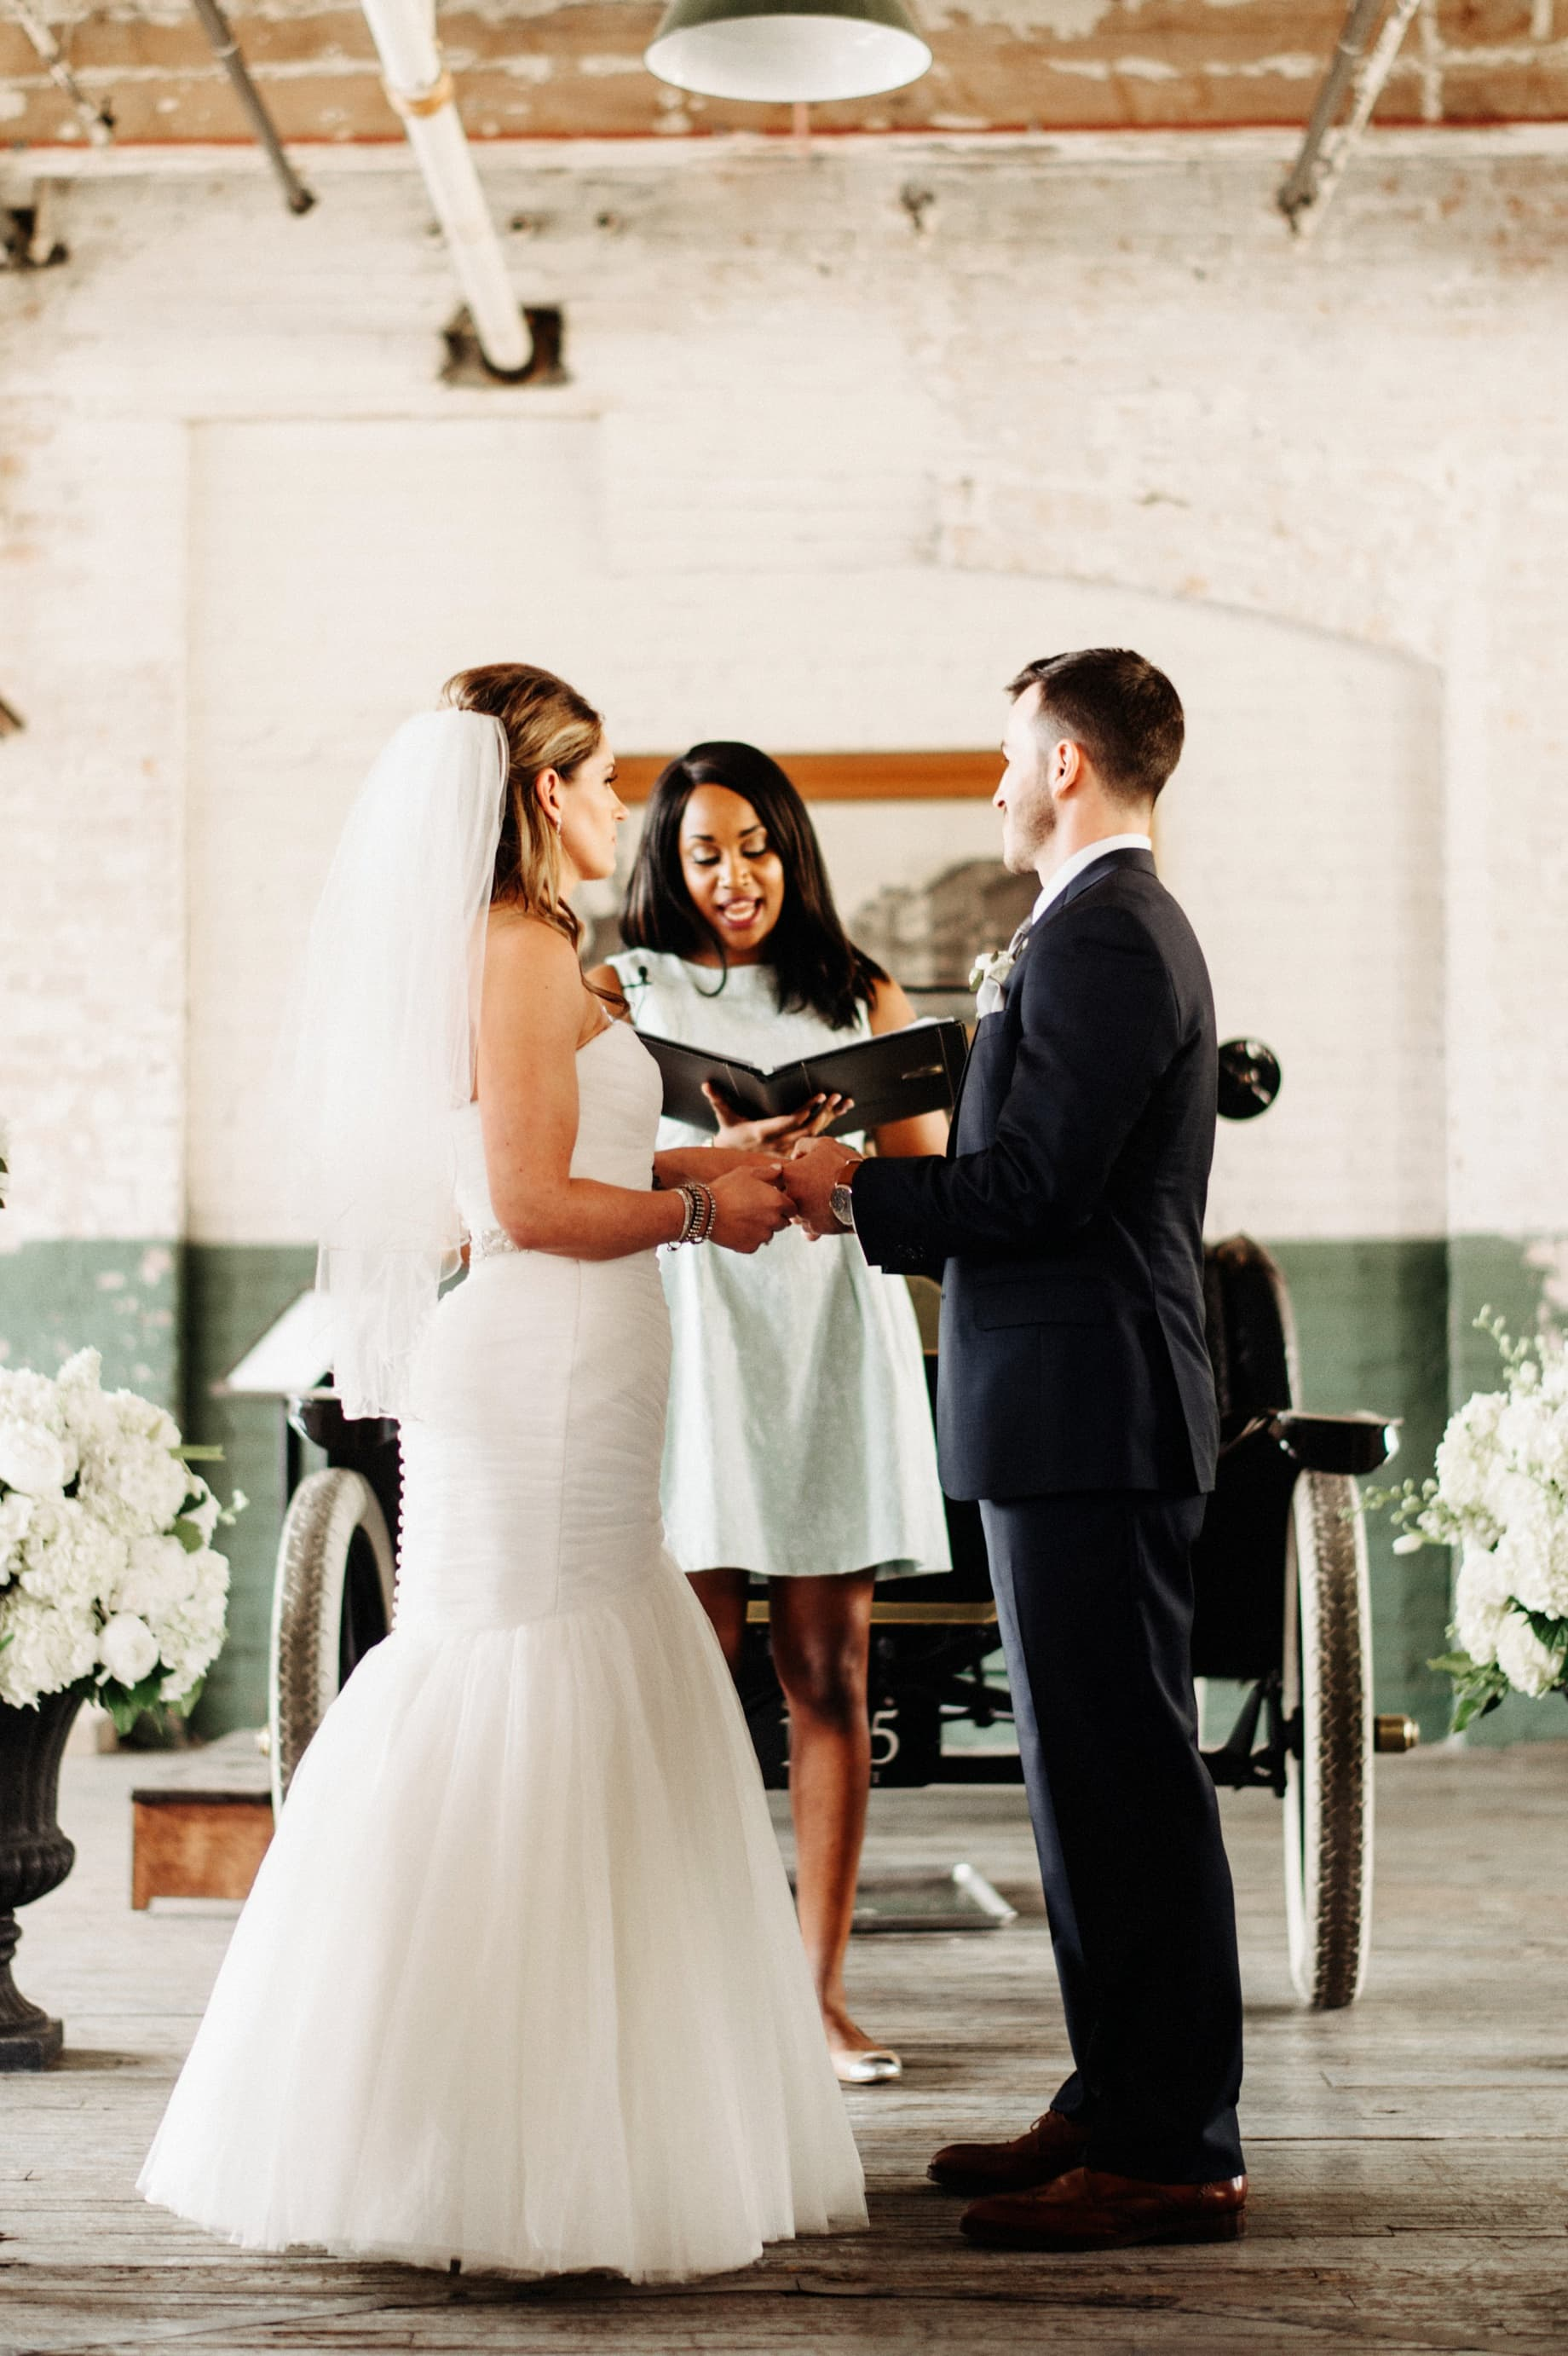 bride and groom during wedding ceremony at ford piquette plant